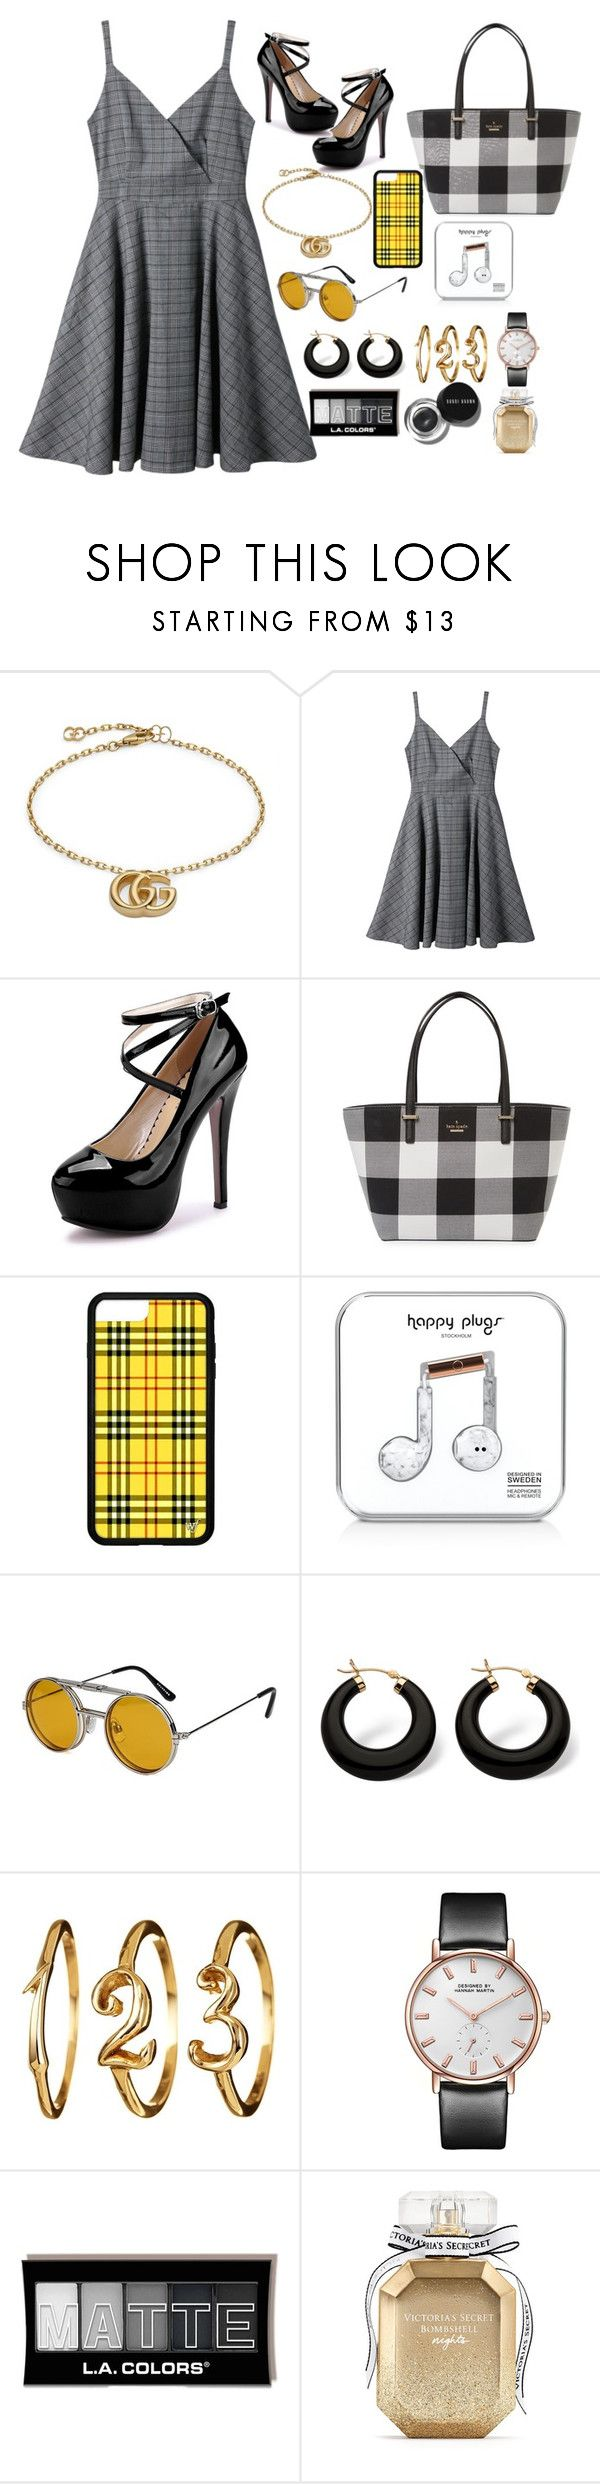 """""""my humps by black eyed peas"""" by pixienathalie ❤ liked on Polyvore featuring Gucci, Kate Spade, Happy Plugs, Spitfire, Palm Beach Jewelry, Bobbi Brown Cosmetics and Victoria's Secret"""